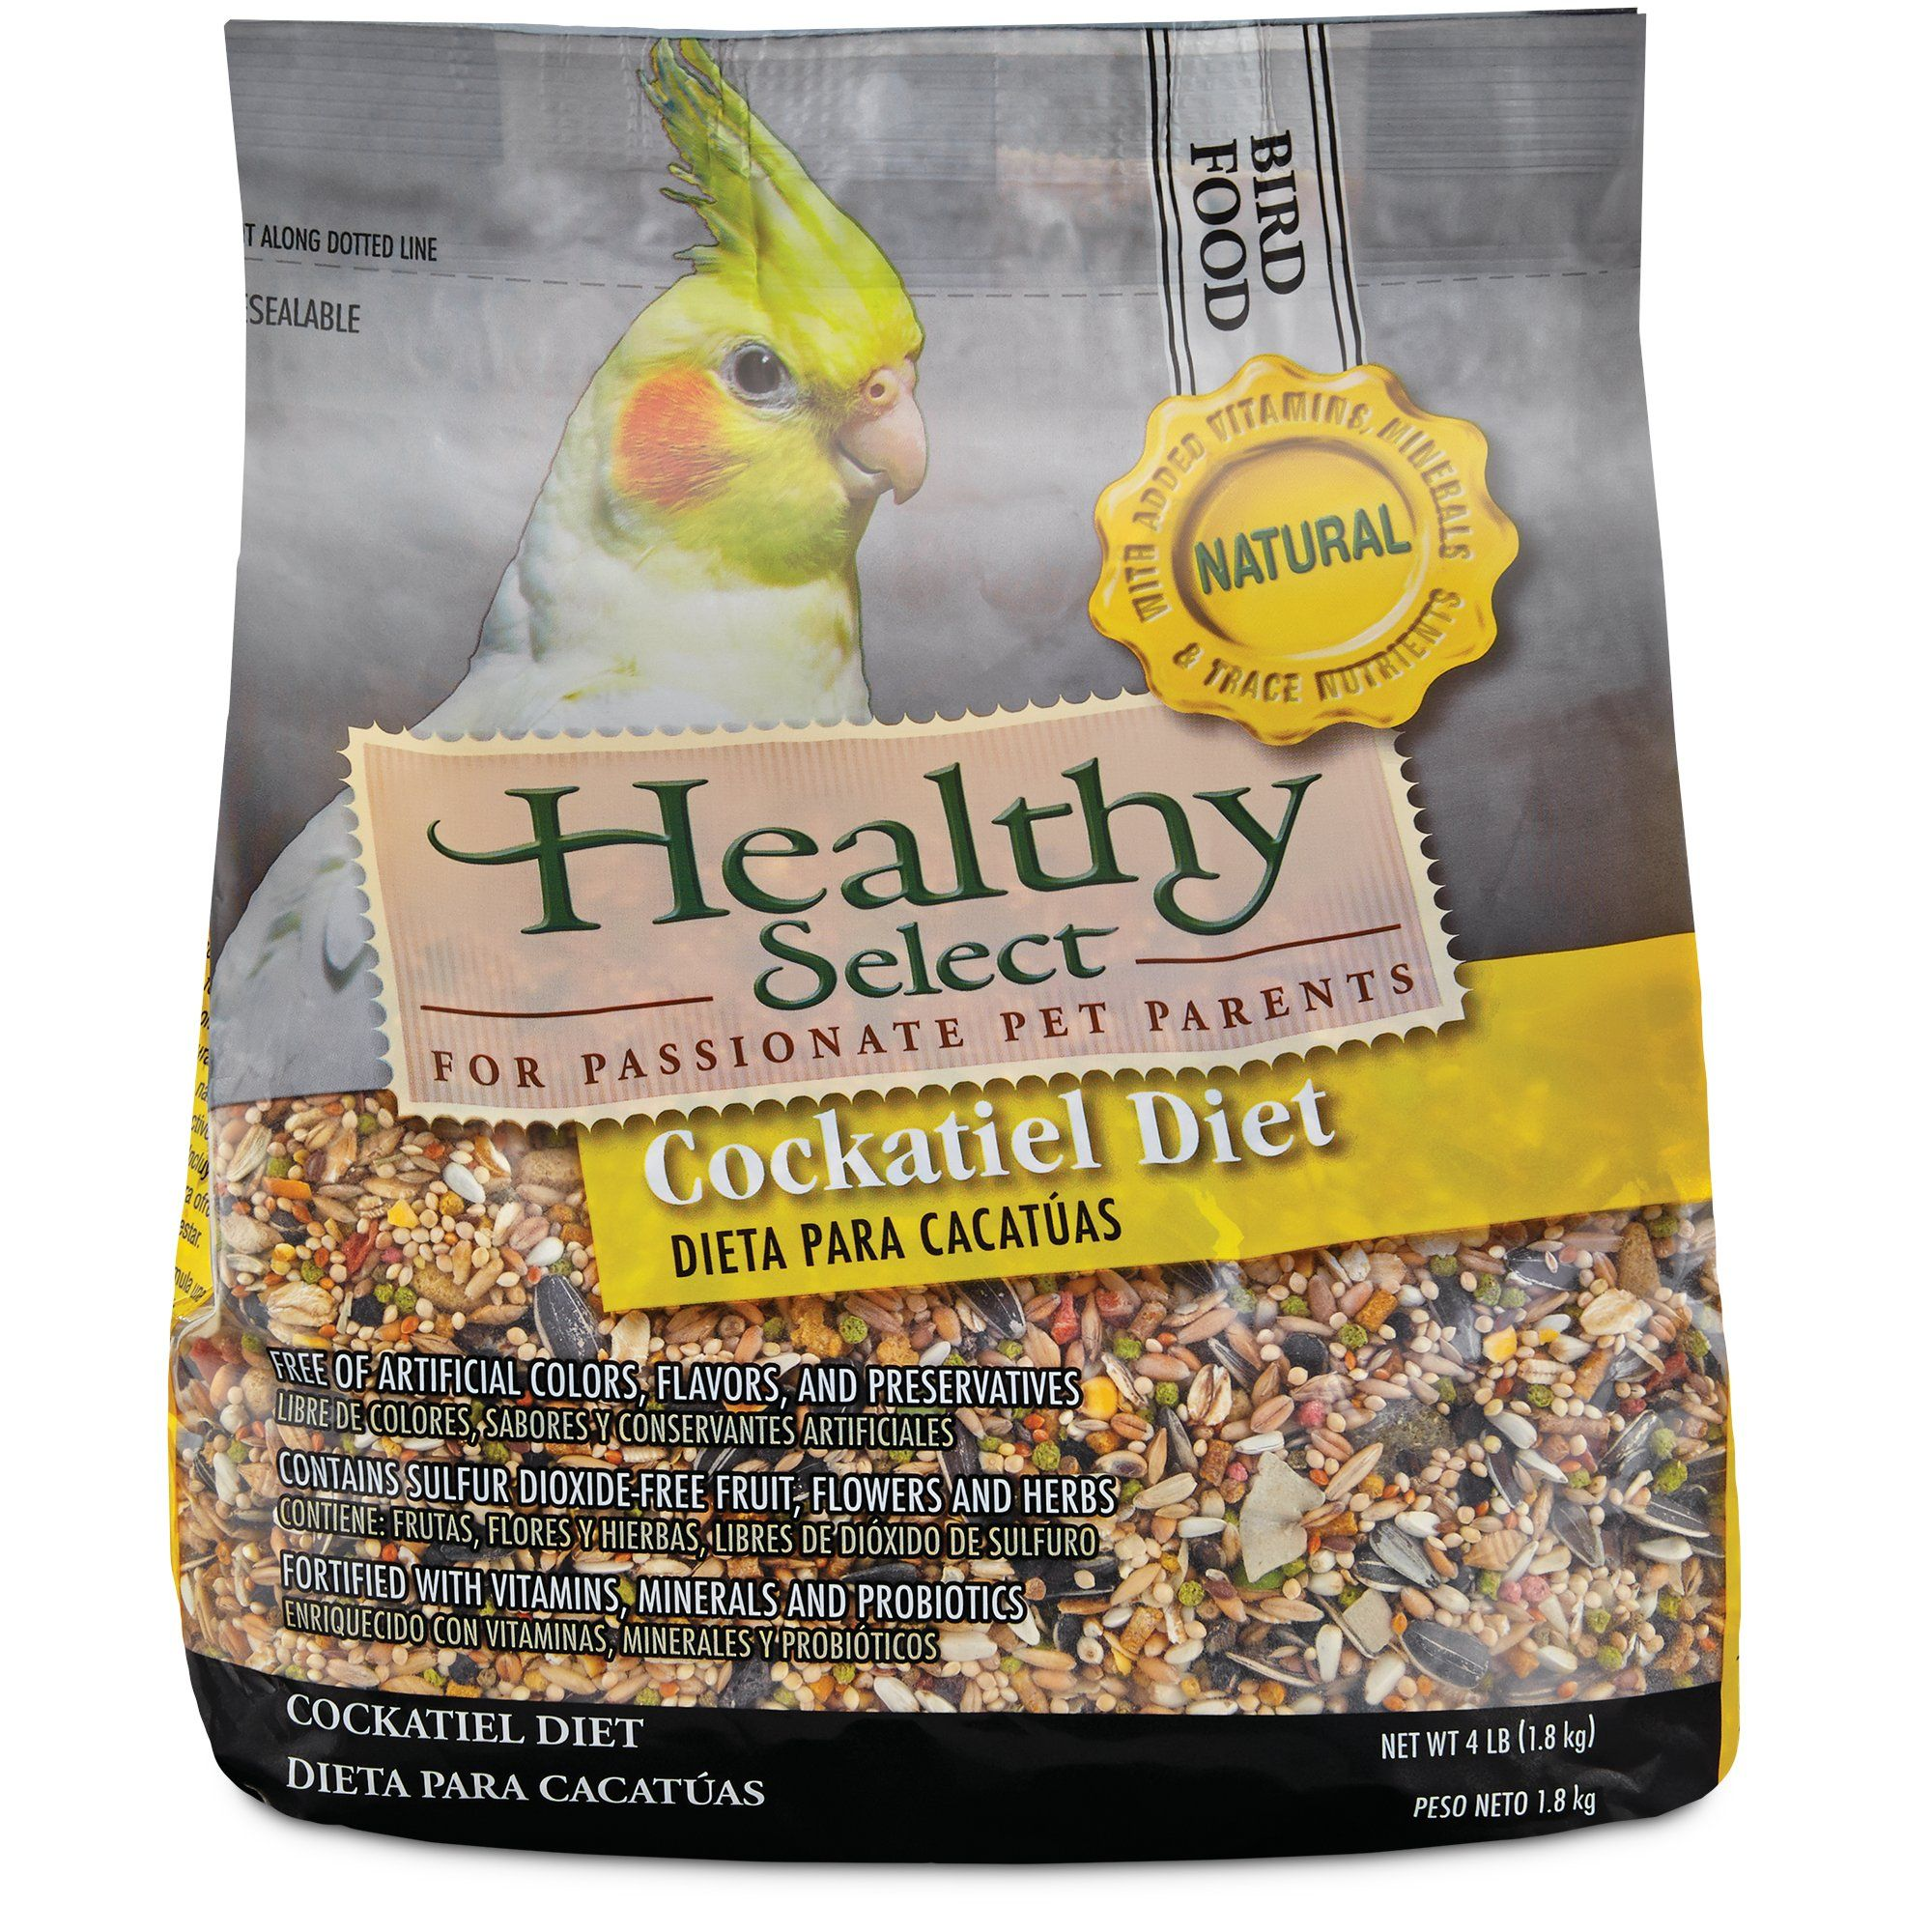 Healthy Select Natural Cockatiel Diet Petco Free Fruit Fermentation Products Diet